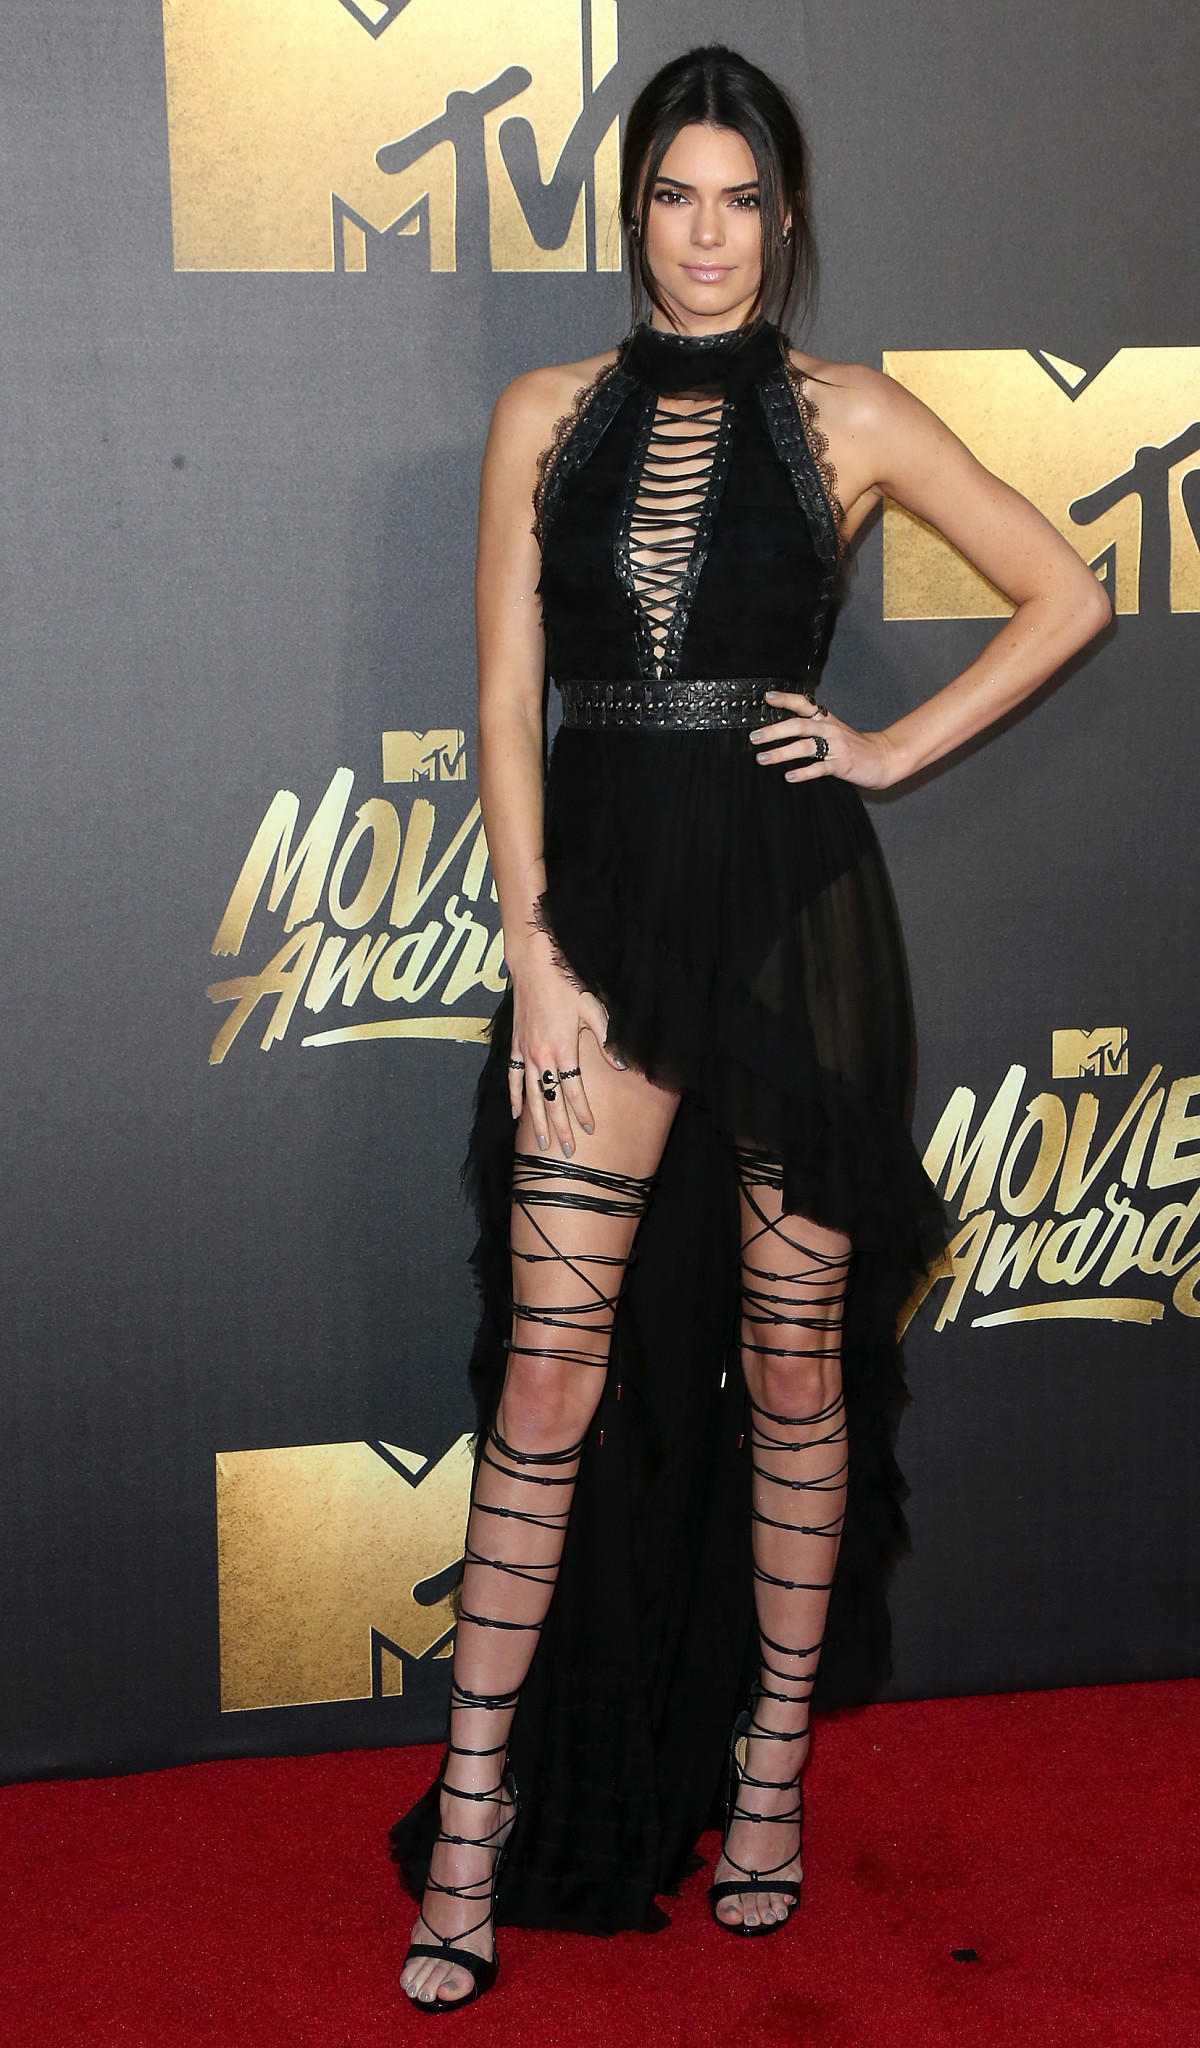 MTV Movie Awards 2016 Galerie Looks roter Teppich